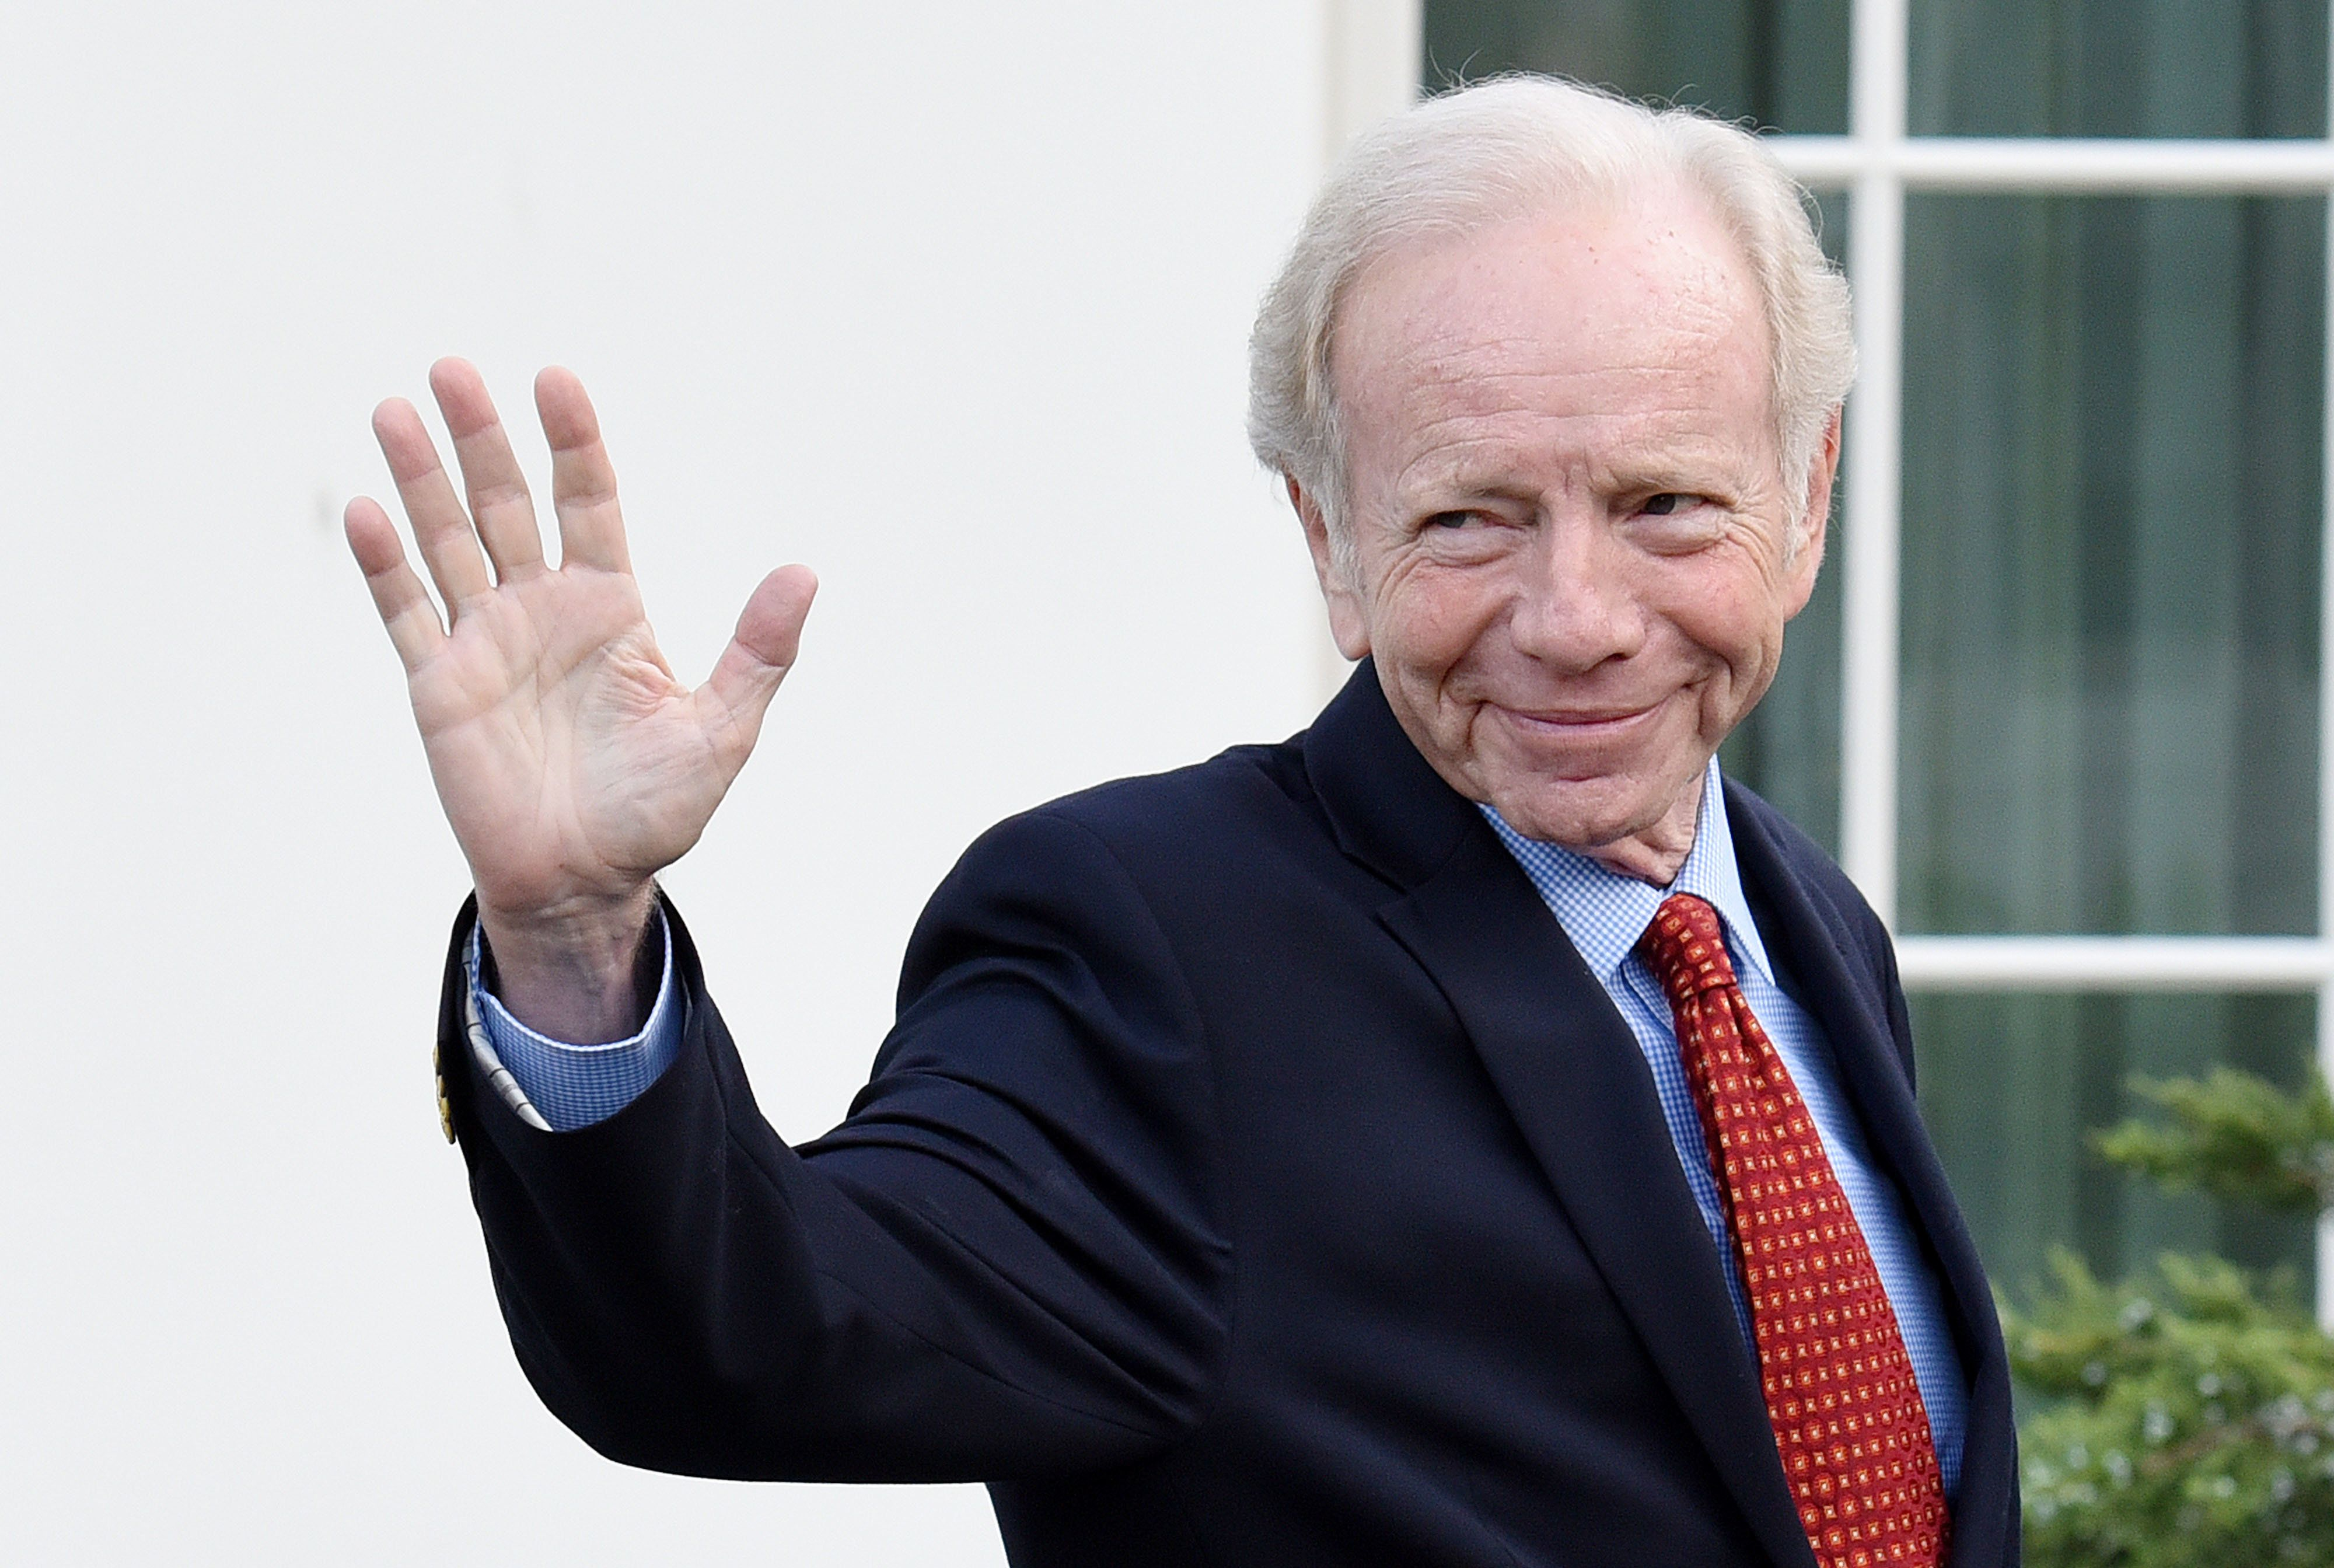 US Senator from Connecticut Joe Lieberman leaves the West Wing of the White House after meeting with US President Donald Trump on May 17, 2017 in Washington, DC. Lieberman is under consideration for the positon of FBI Director. Trump also met with three other candidates: Acting FBI Director Andrew McCabe, former senior FBI official Richard McFeely and former Oklahoma Governor Frank Keating. / AFP PHOTO / Olivier Douliery        (Photo credit should read OLIVIER DOULIERY/AFP/Getty Images)